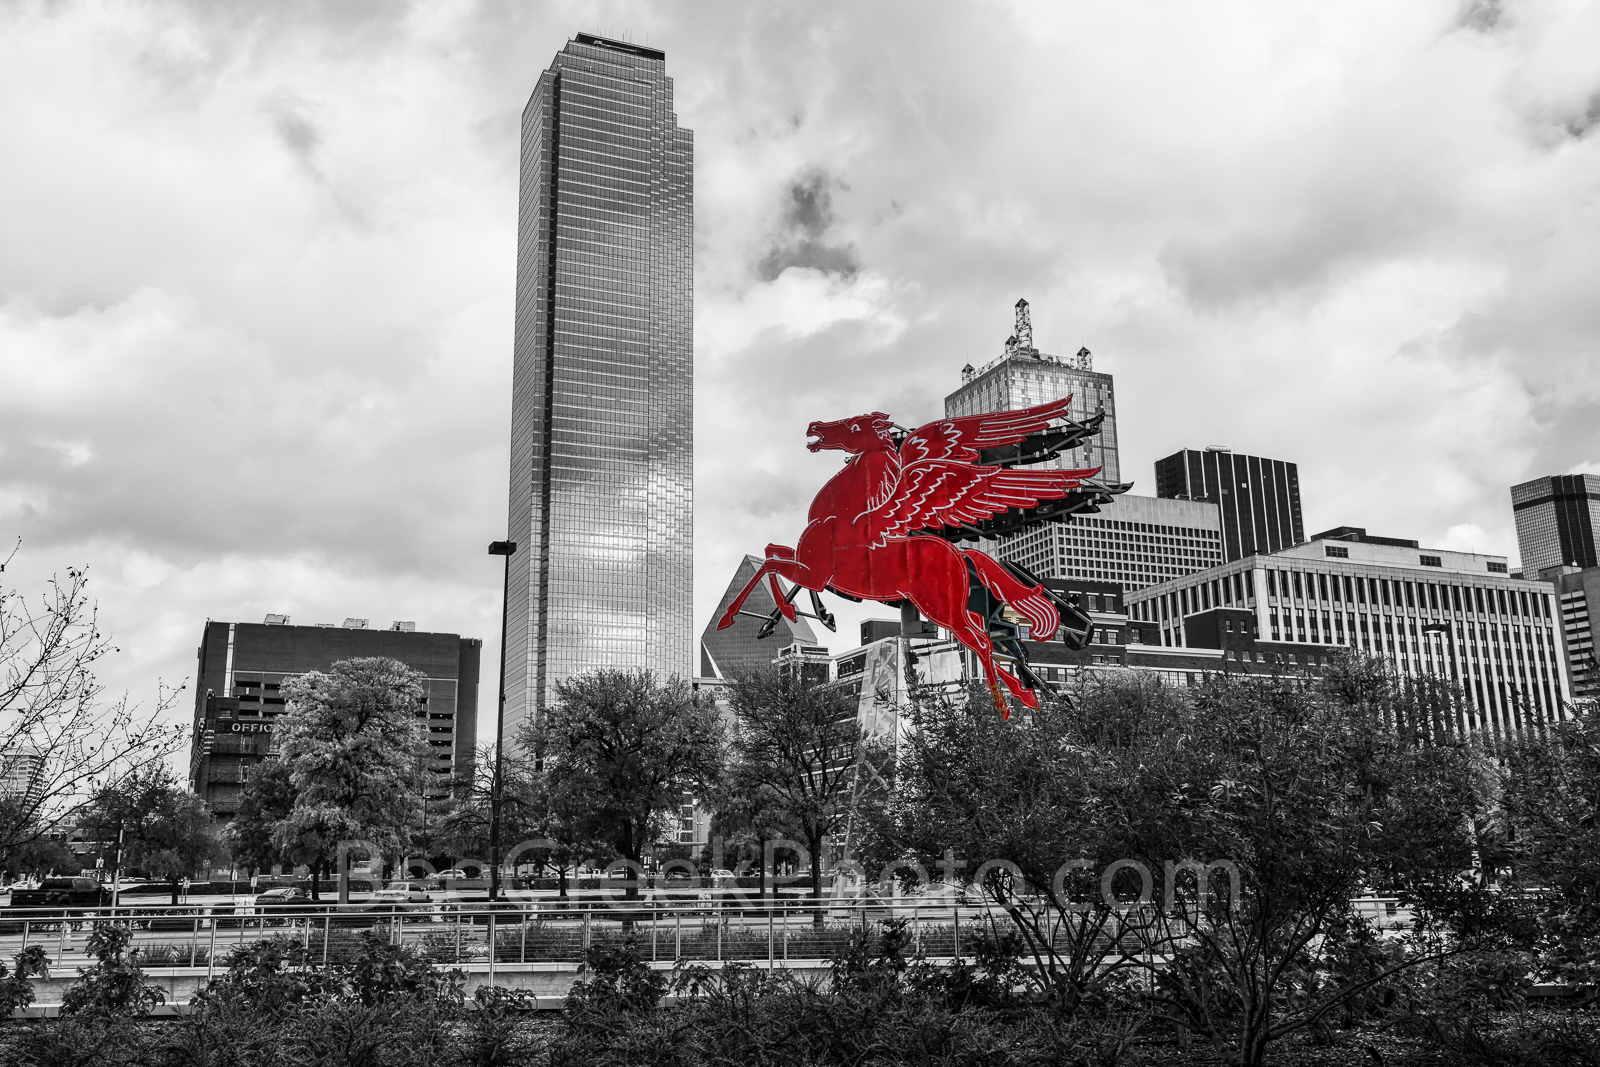 Dallas Downtown BW Red Pegasus - We capture this image with the Dallas downtown skyline in black and white with only the Pegasus...